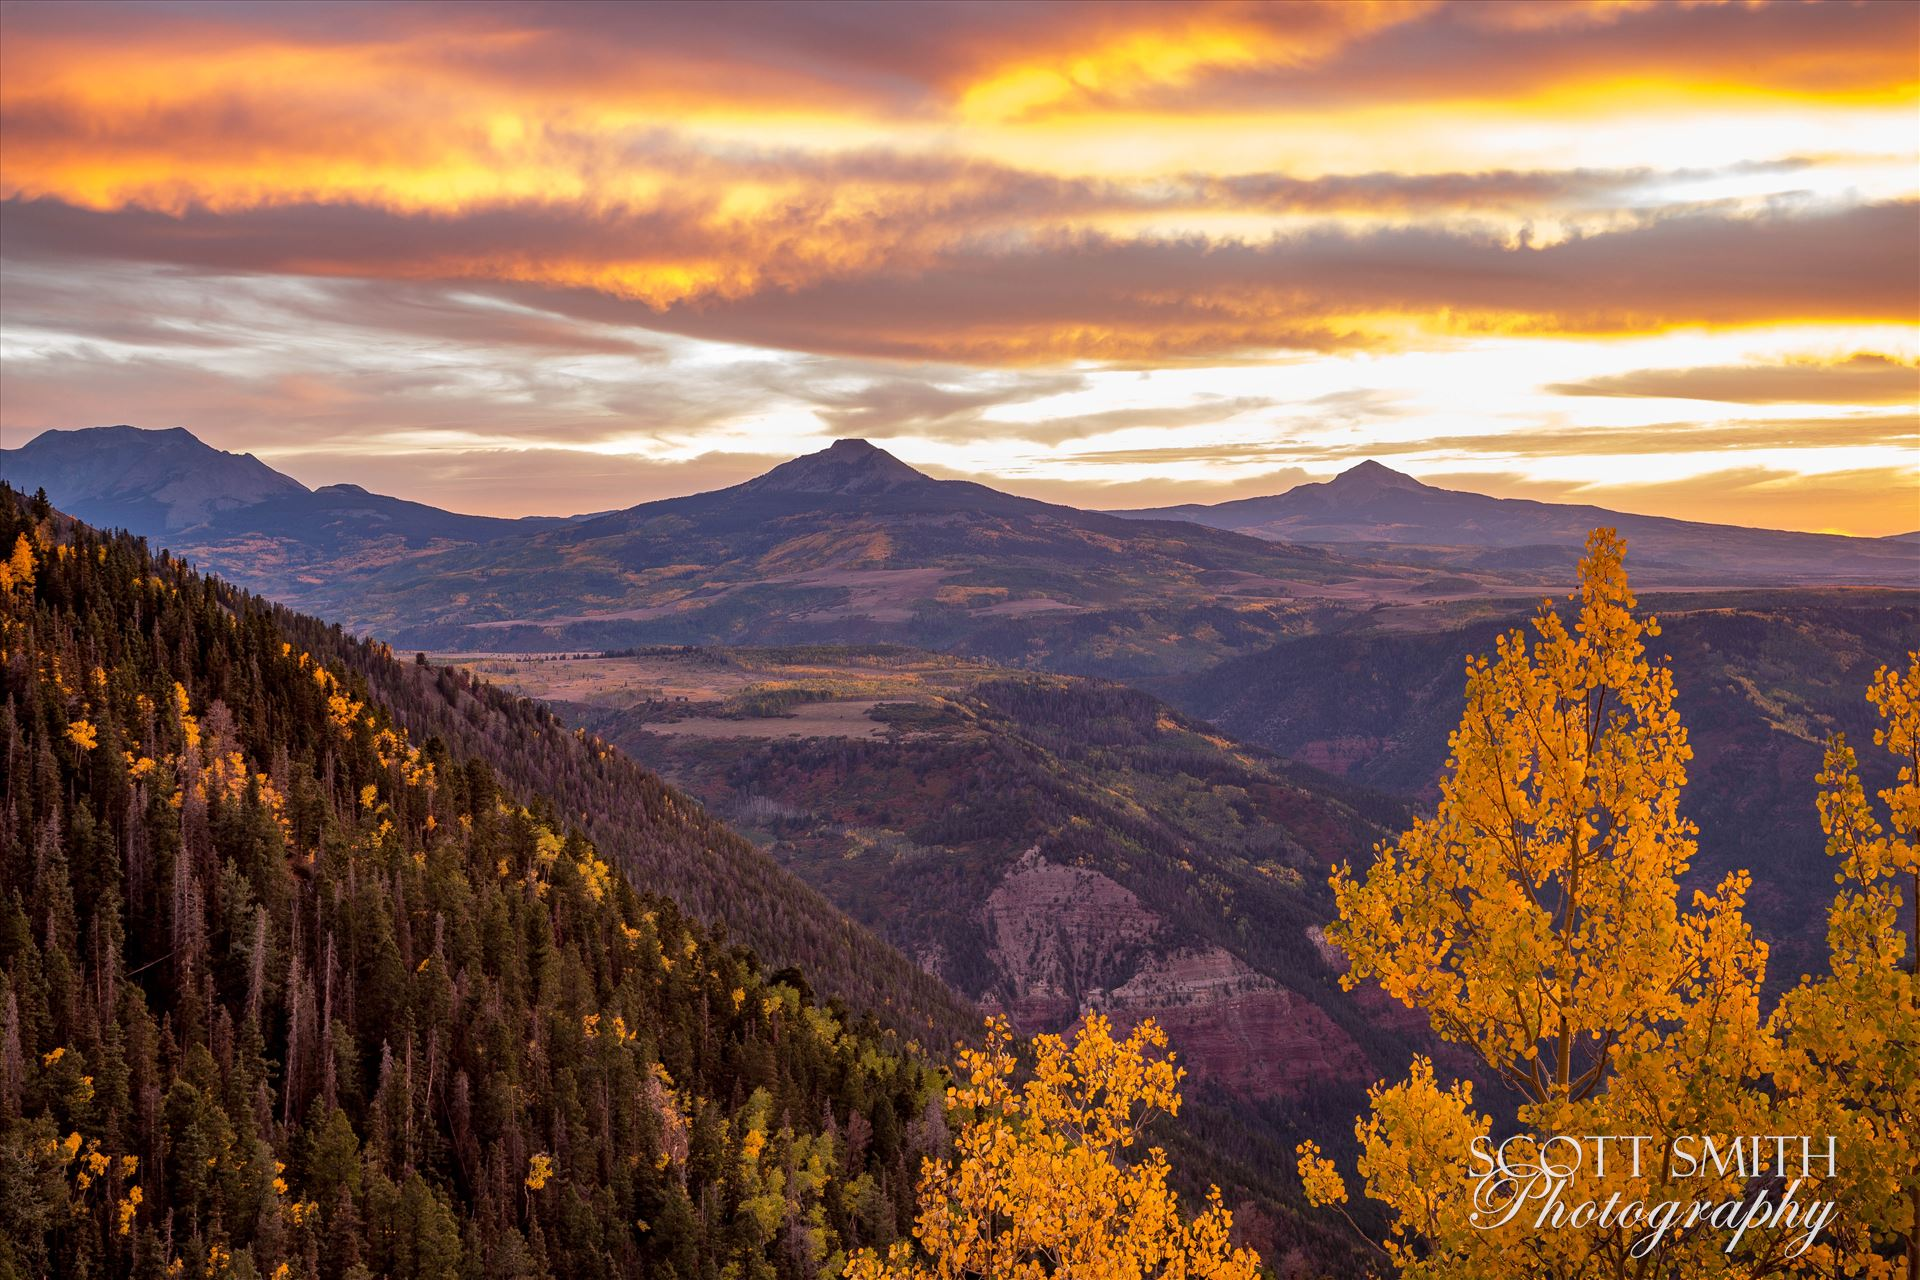 Last Dollar Road Sunset - Sunset on a quiet, secluded spot from Last Dollar Road, outside of Telluride, Colorado in the fall. by Scott Smith Photos